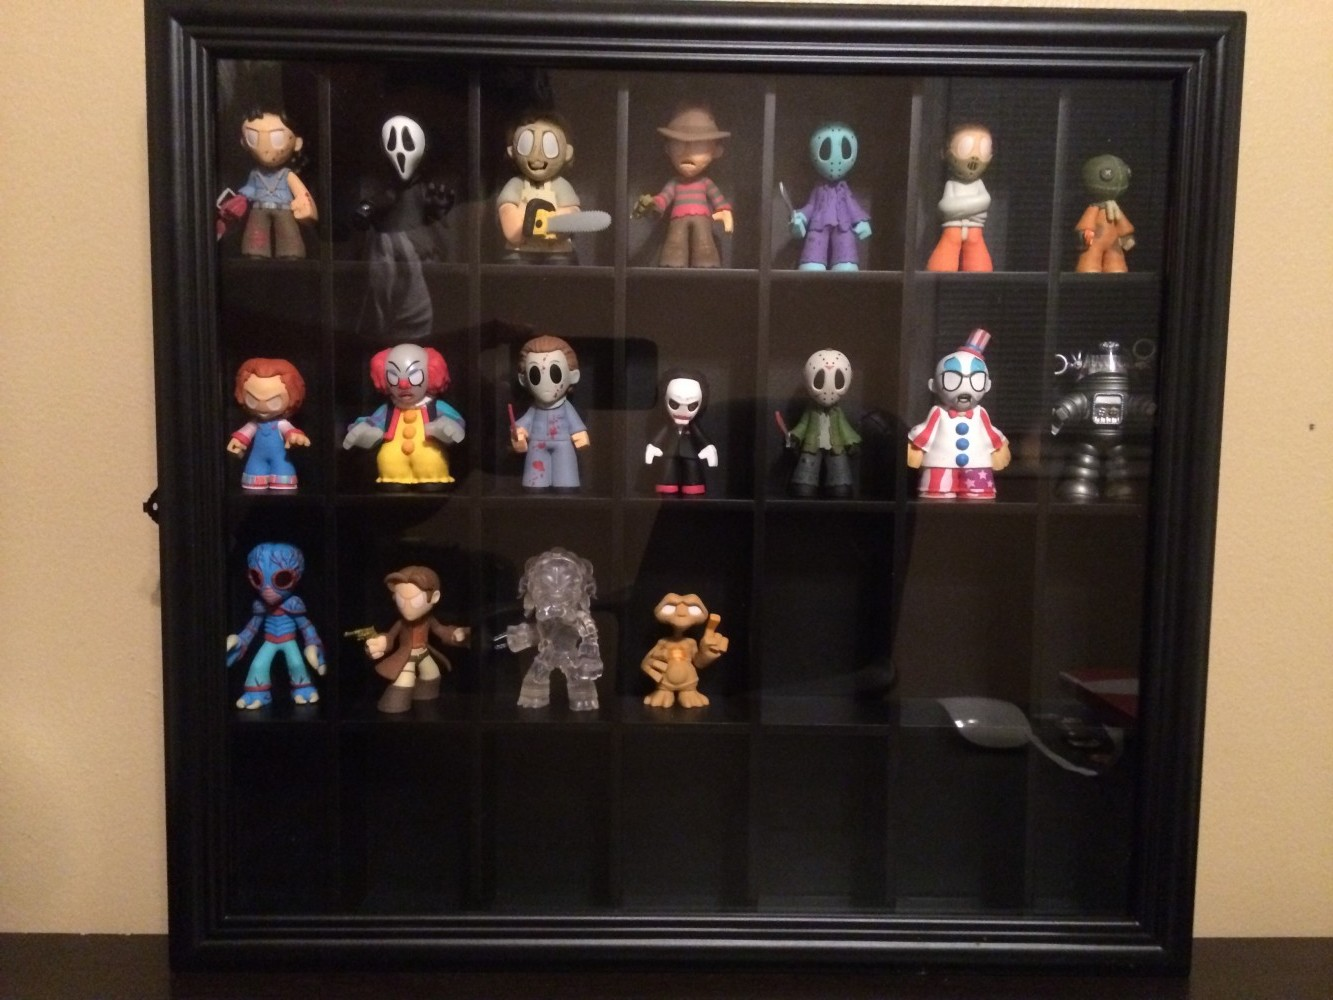 mystery shopper mini case So i'm clueless when it comes to mystery minis, do they all come in a pre-determined order like in the case layout showen or is it random each box i really only want the funtime foxy but god i hate blind box stuff like this, so if it is pre-determined this would be a big help.